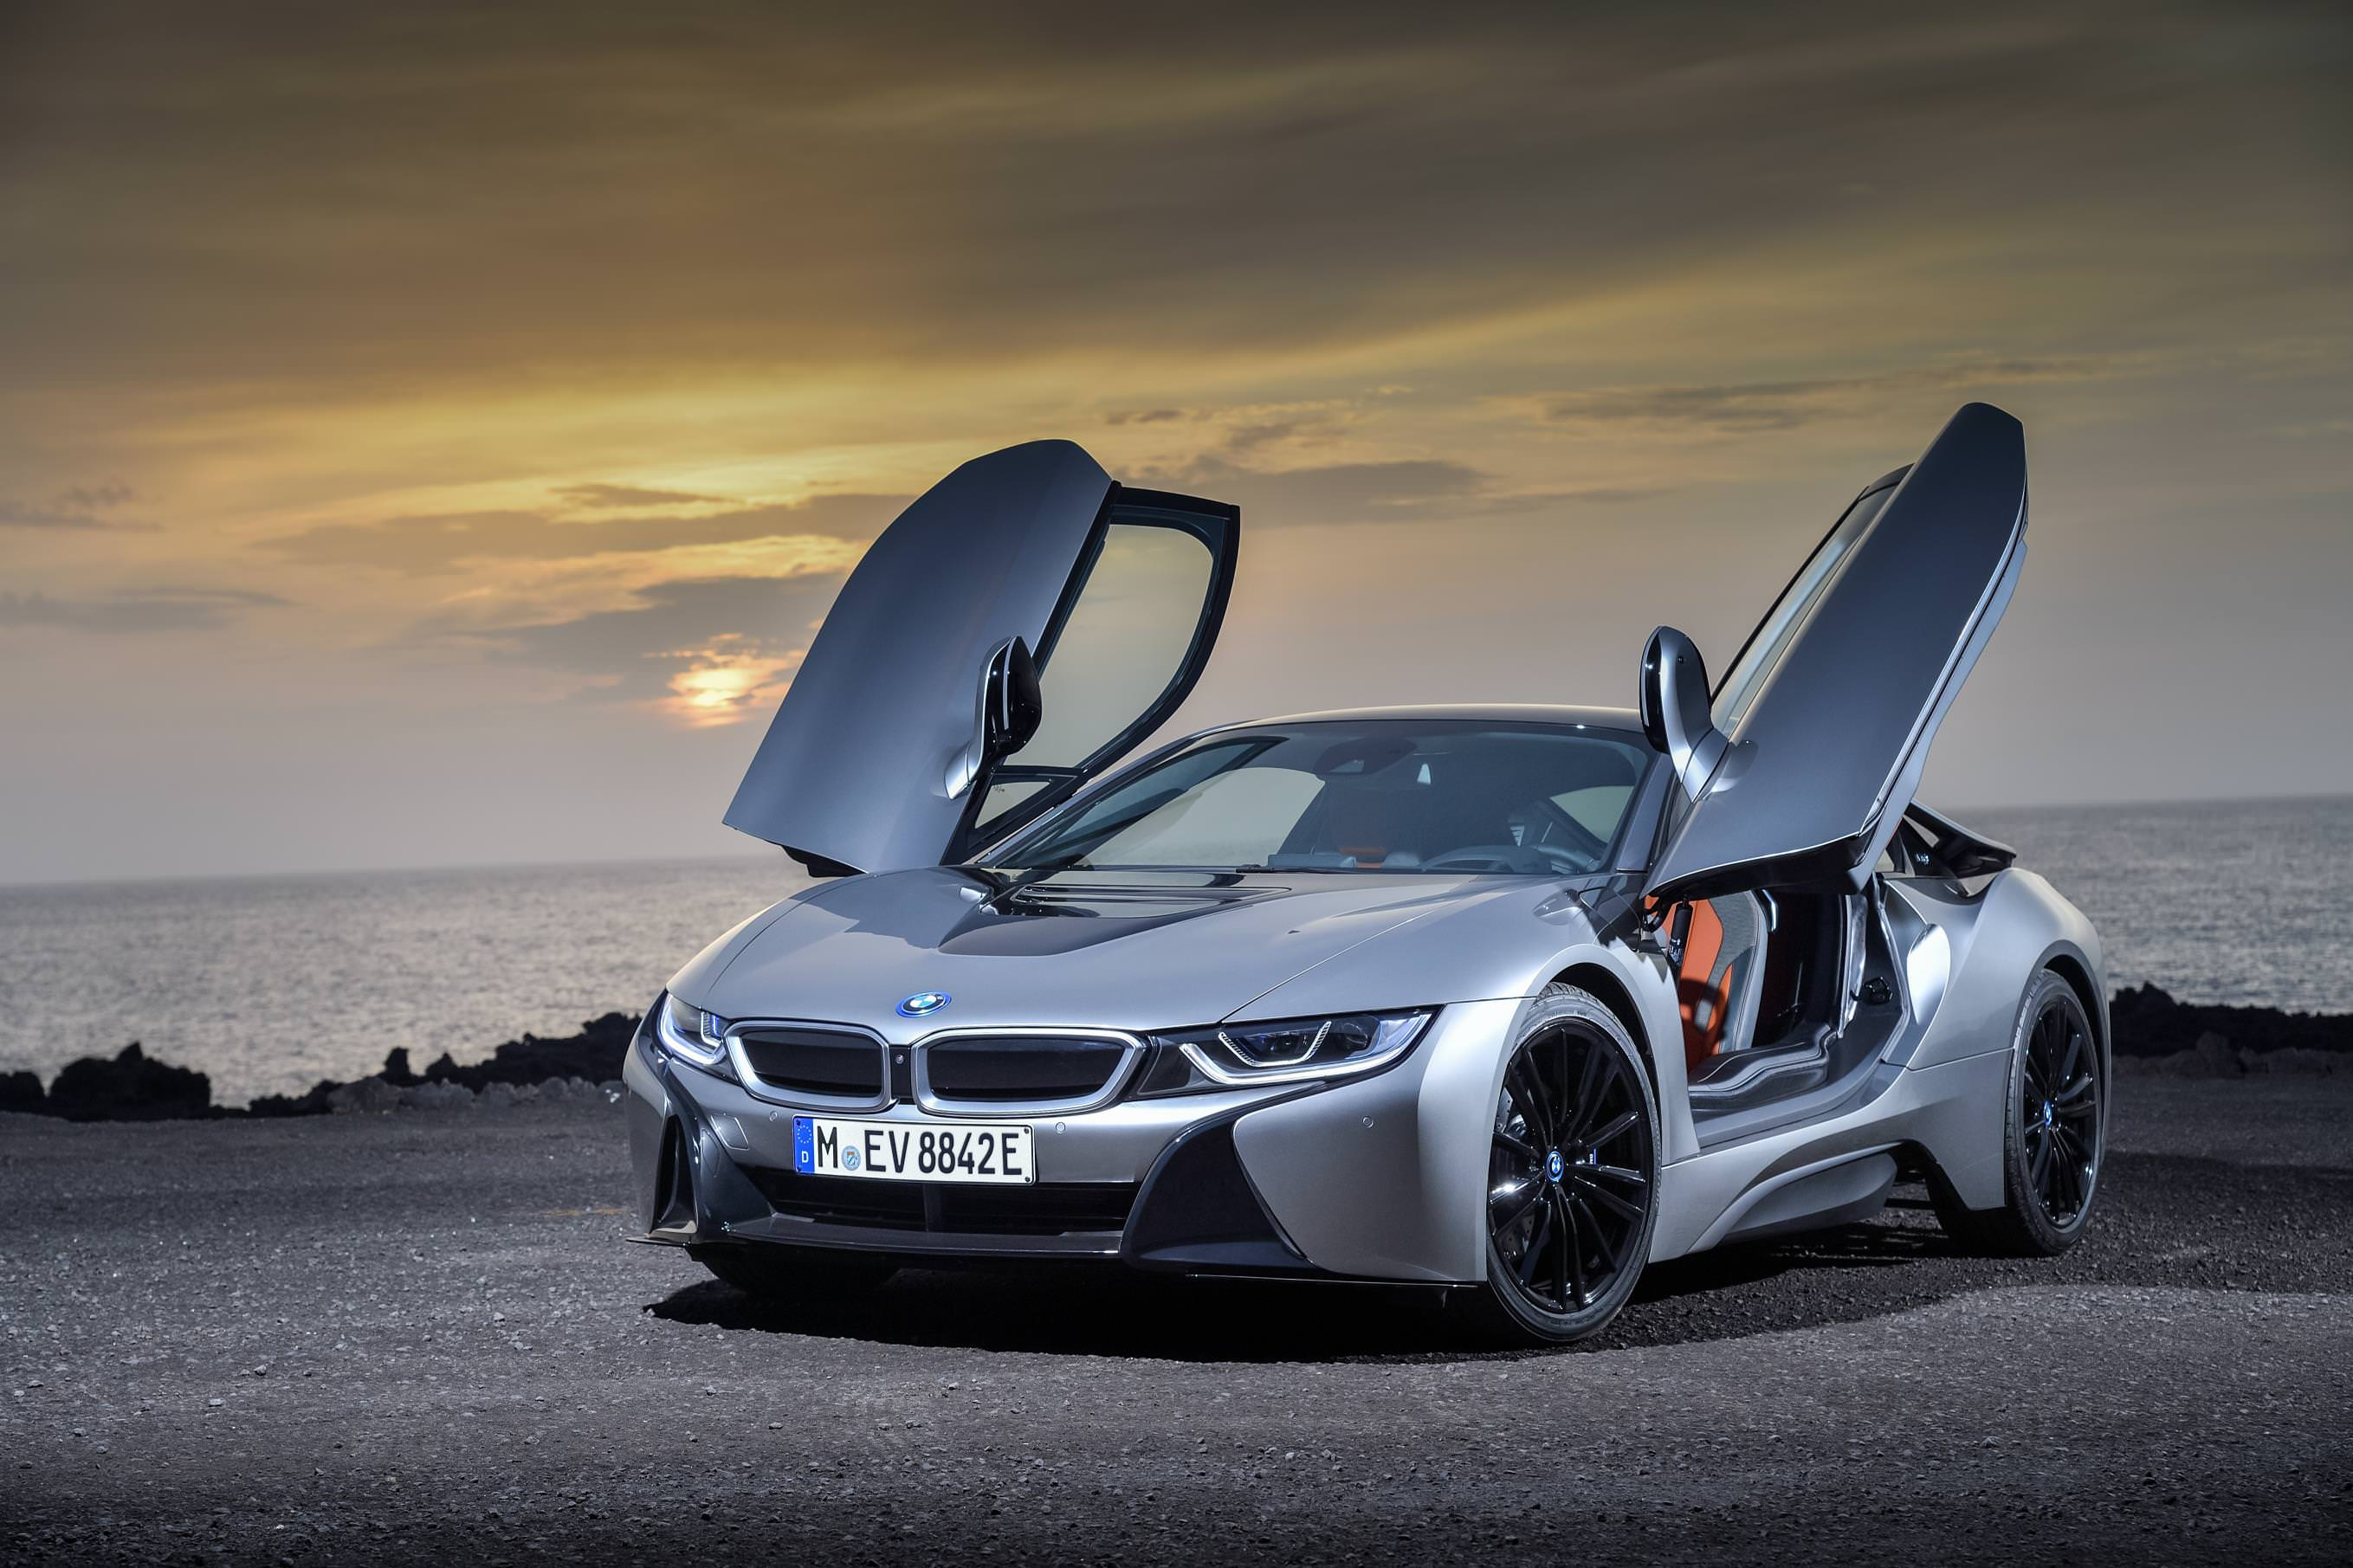 image of a bmw i8 car exterior with its doors open